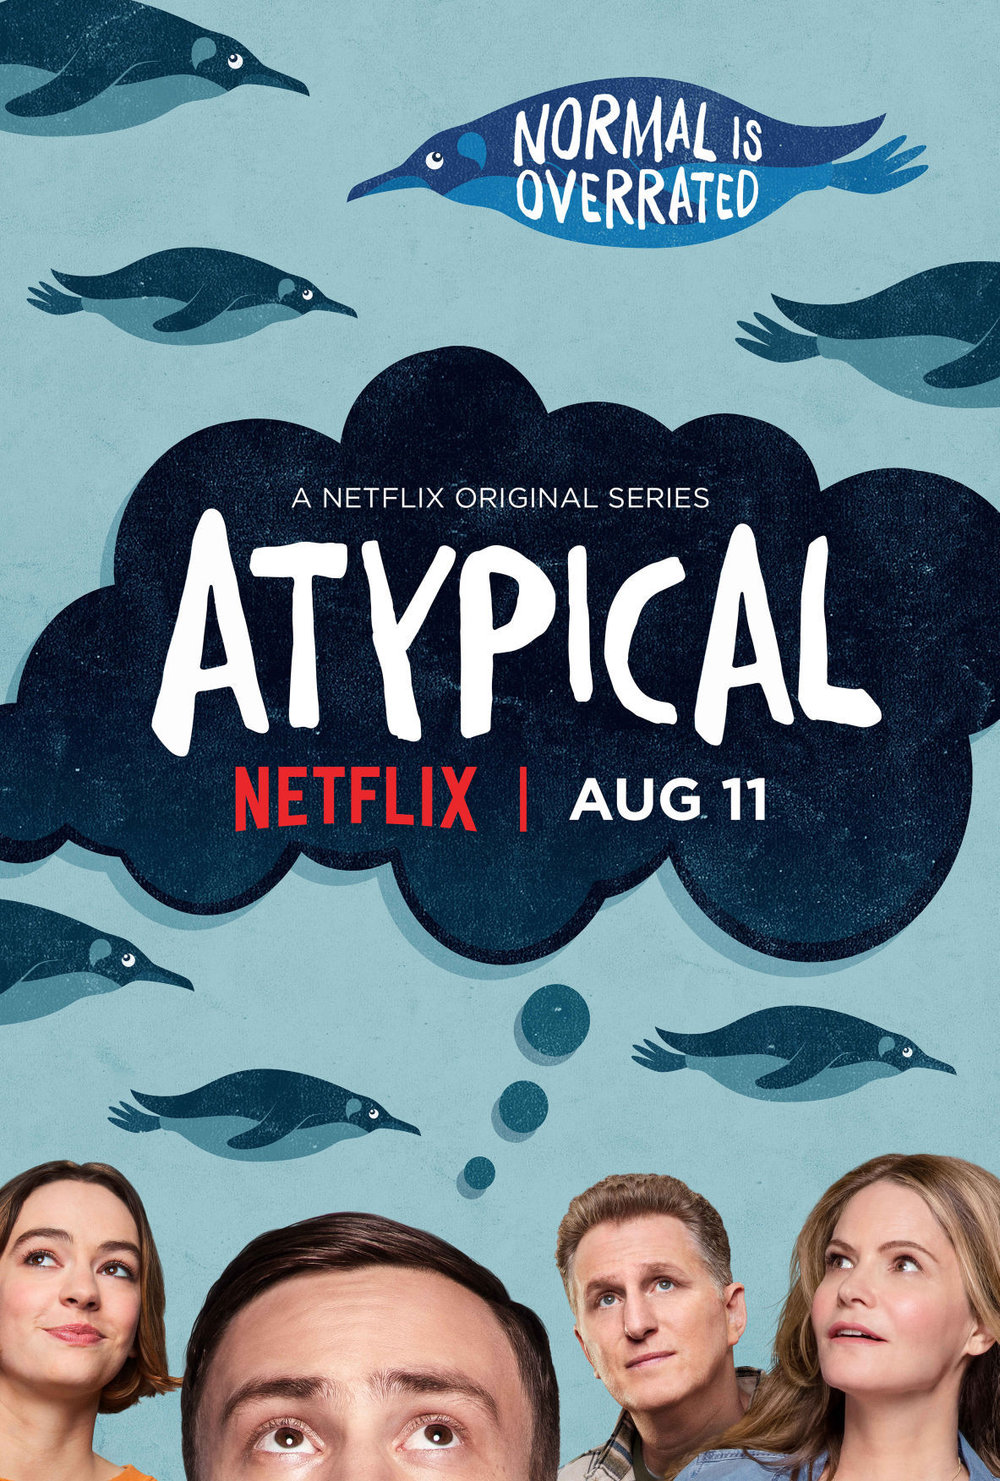 Atypical - Atypical is a coming-of-age dark comedy television series created by Robia Rashid for Netflix. Sam, an 18-year old on the autism spectrum portrayed by Keir Gilchrist, decides it's time to find a girlfriend, a journey that sets Sam's mom on her own life-changing path as her son seeks more independence. Gilchrist said about the character,